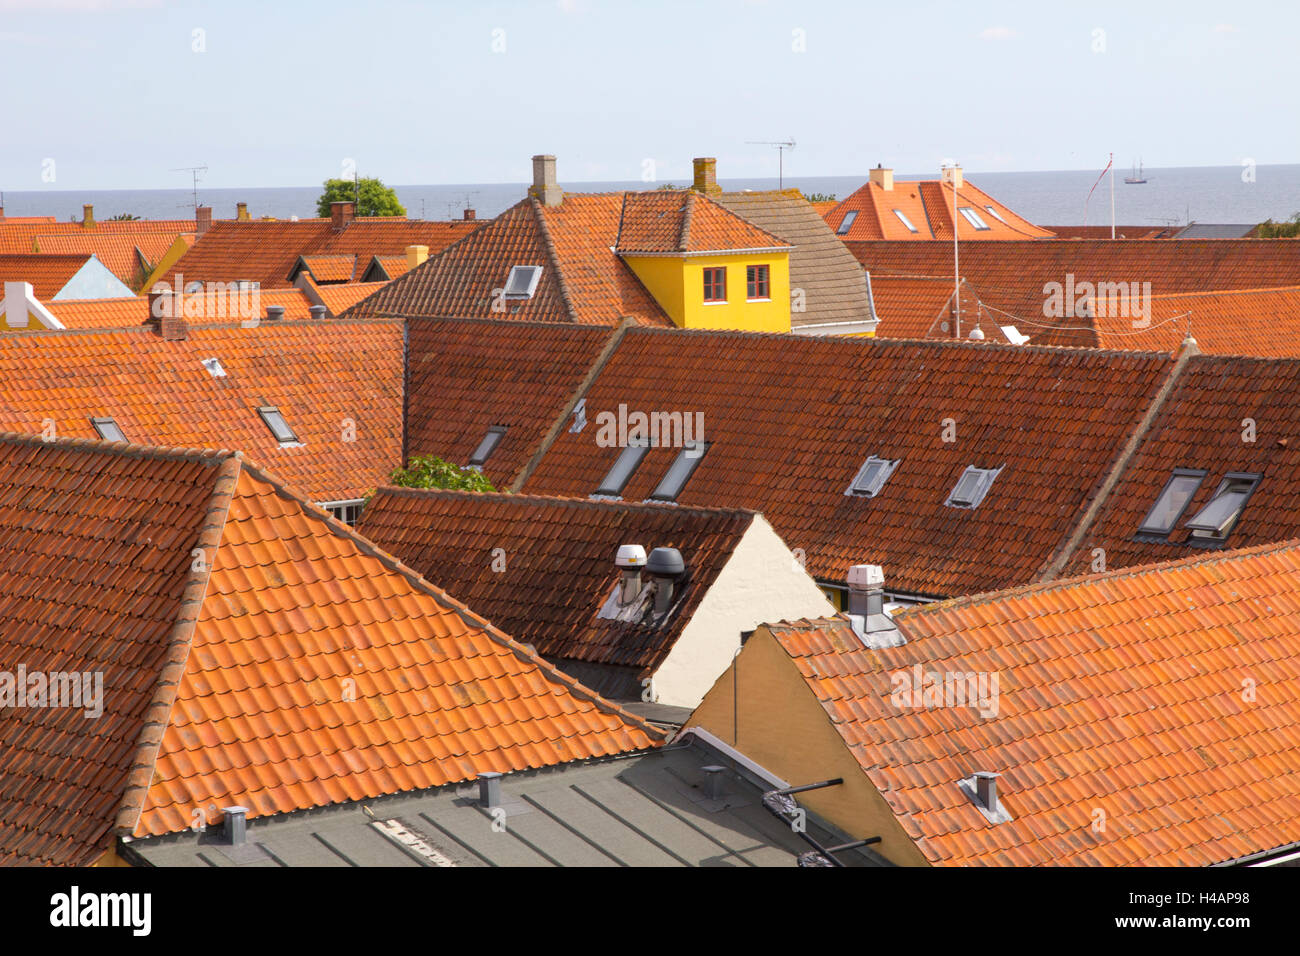 Colorful tiled-roof houses and shops characterize the coastal village of Svaneke on the Danish island of Bornholm. Stock Photo